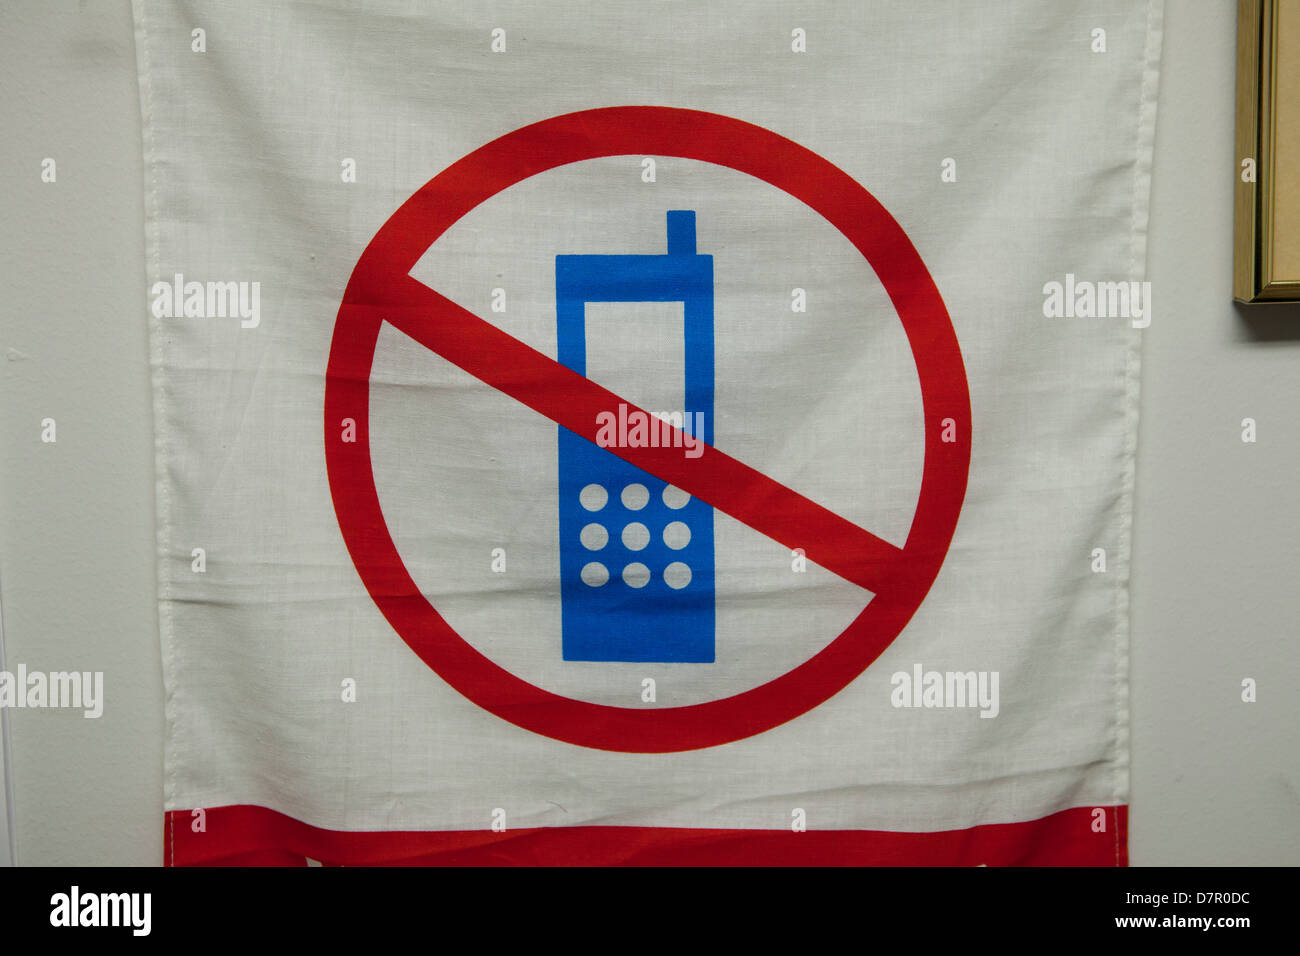 No mobile phone use sign - Stock Image